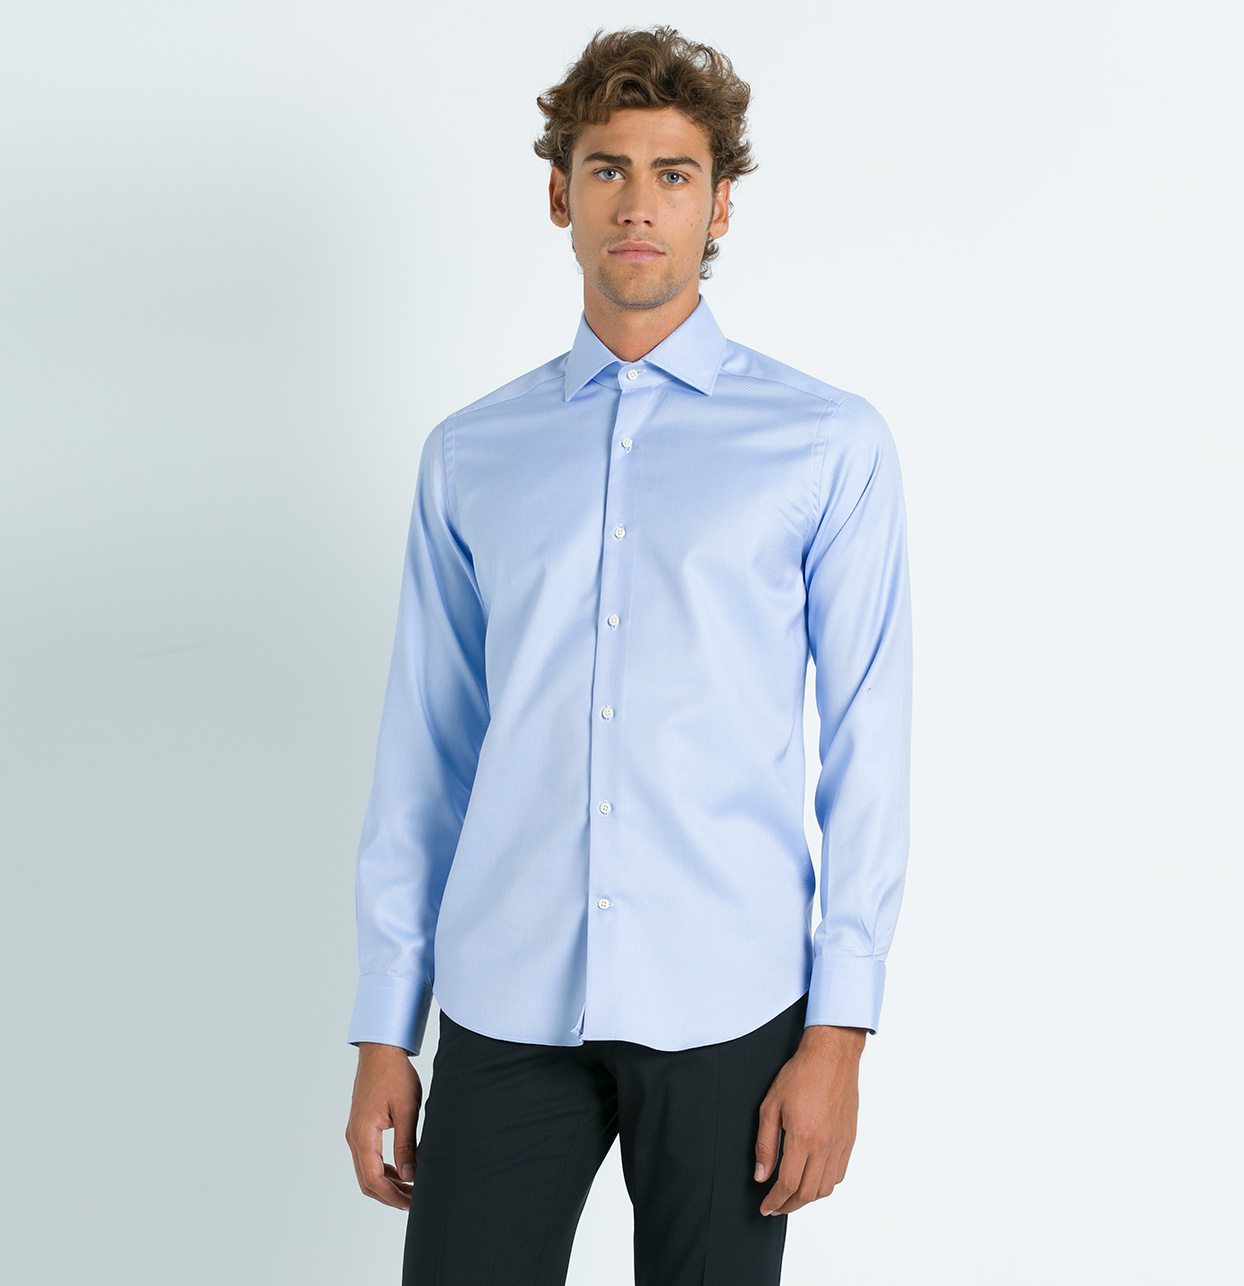 Camisa Formal Wear SLIM FIT cuello italiano modelo ROMA tejido micro dibujo color celeste, 100% Algodón. - Ítem3